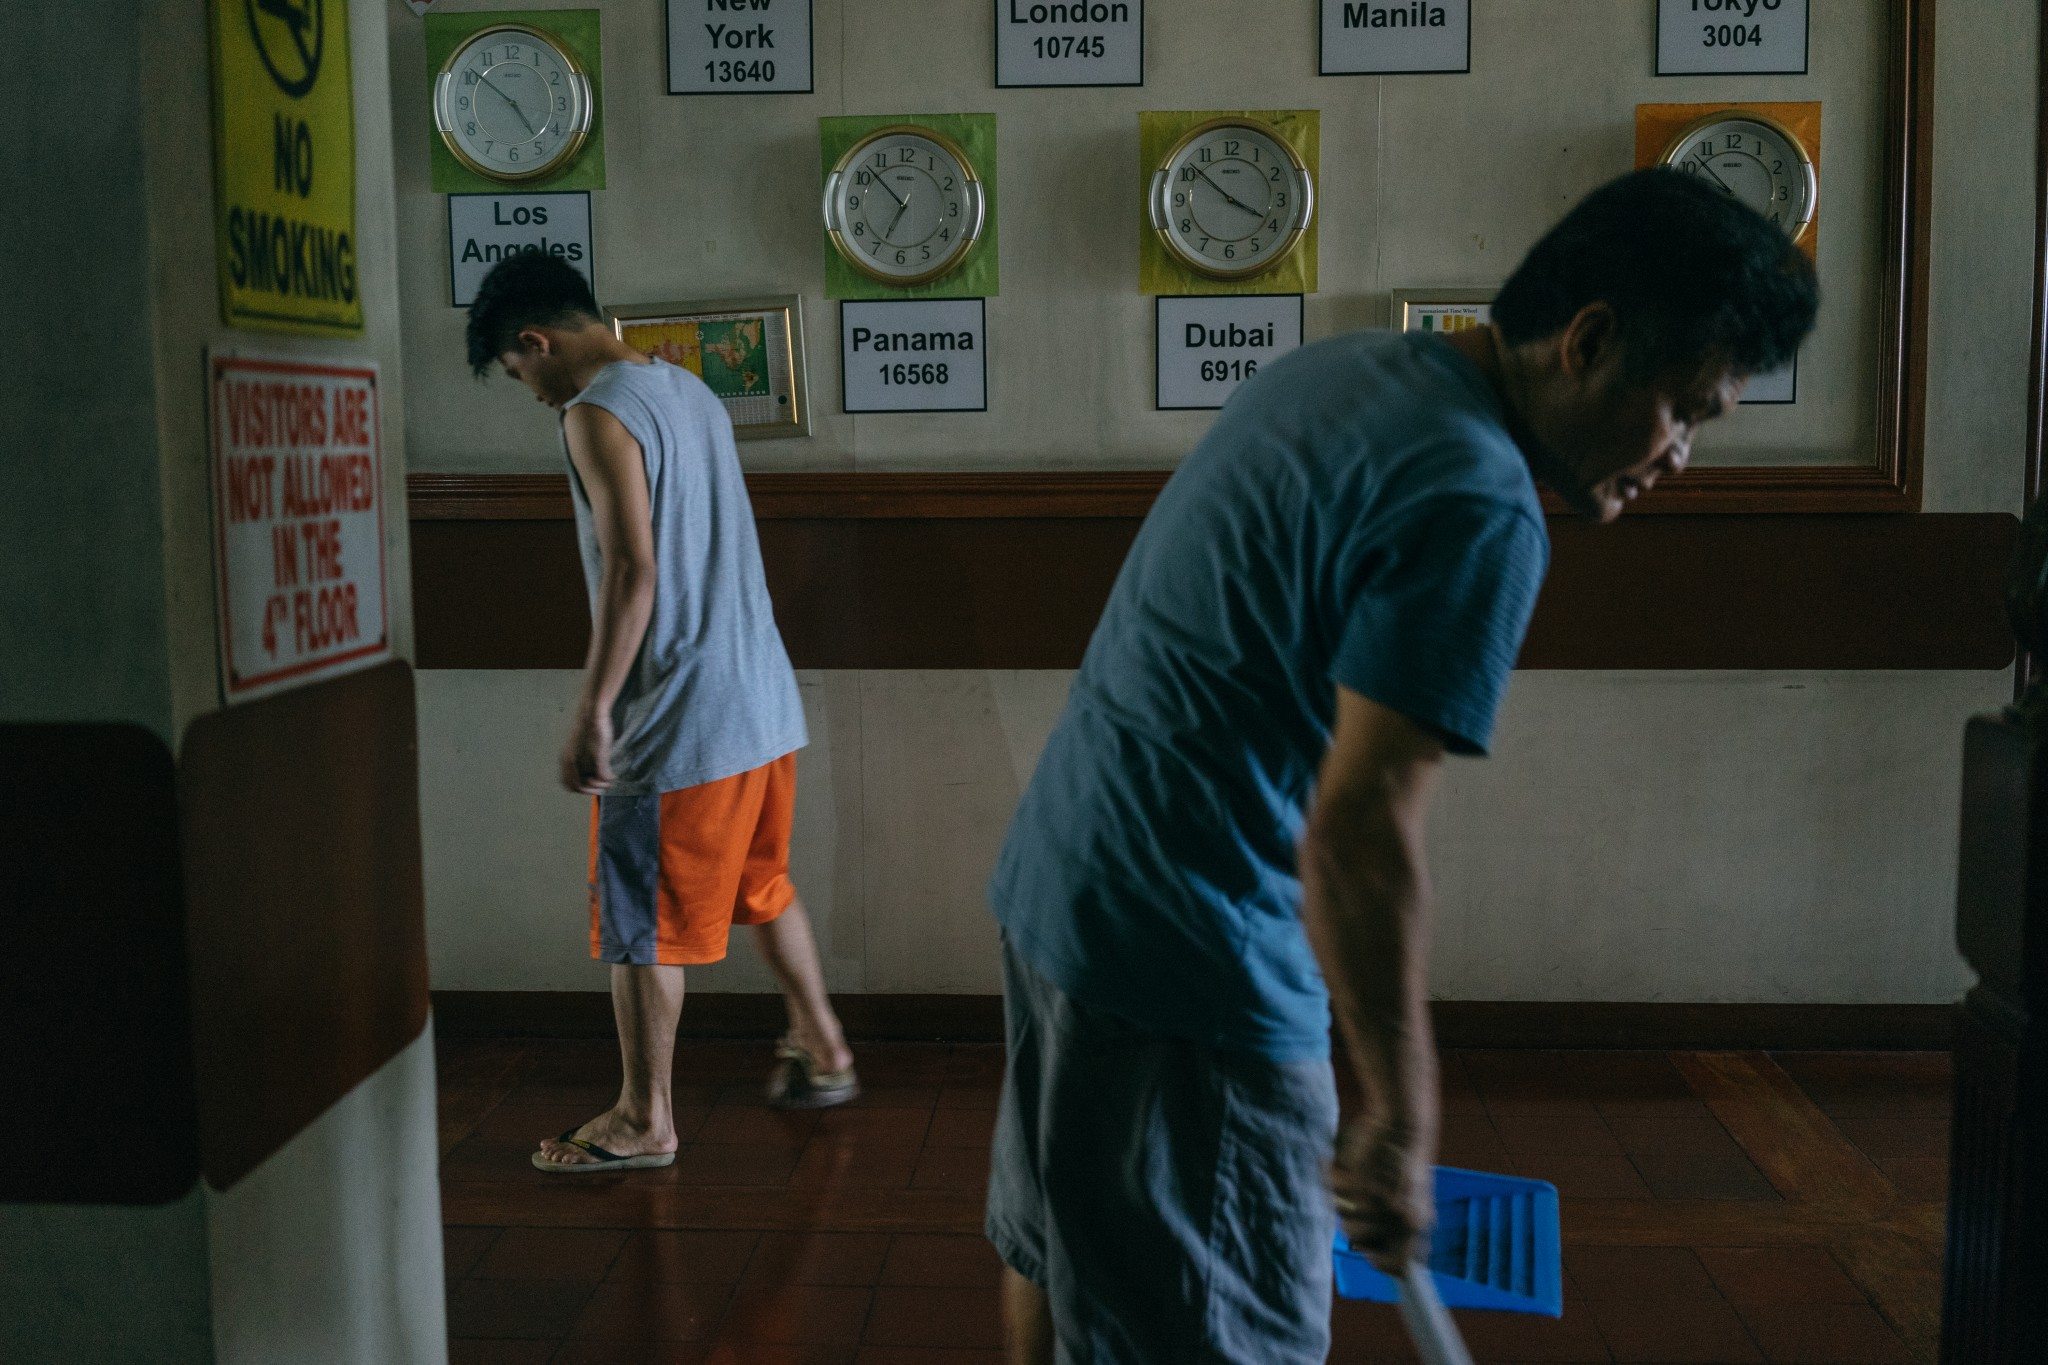 Men clean the floors inside the Apostleship of the Sea dormitory, a place where seafarers can stay for a low price while waiting to be employed in a ship. The Apostleship of the Sea is a Catholic organization that supports and provides services for seafarers who are often vulnerable to abuse. (Photo: Hannah Reyes Morales)